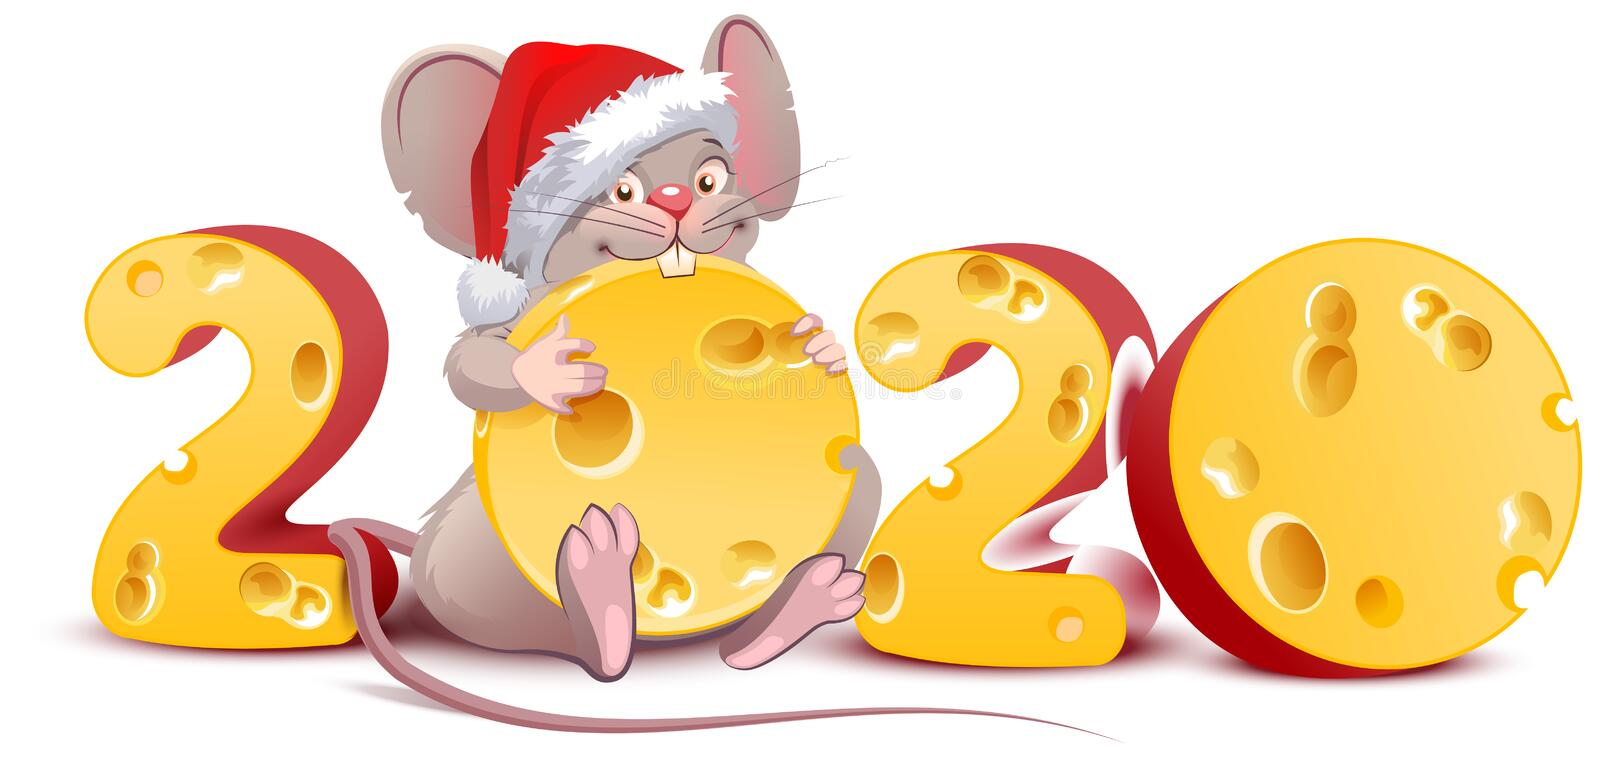 2020 year of mouse to Chinese calendar. Santa mouse holding swiss cheese vector illustration